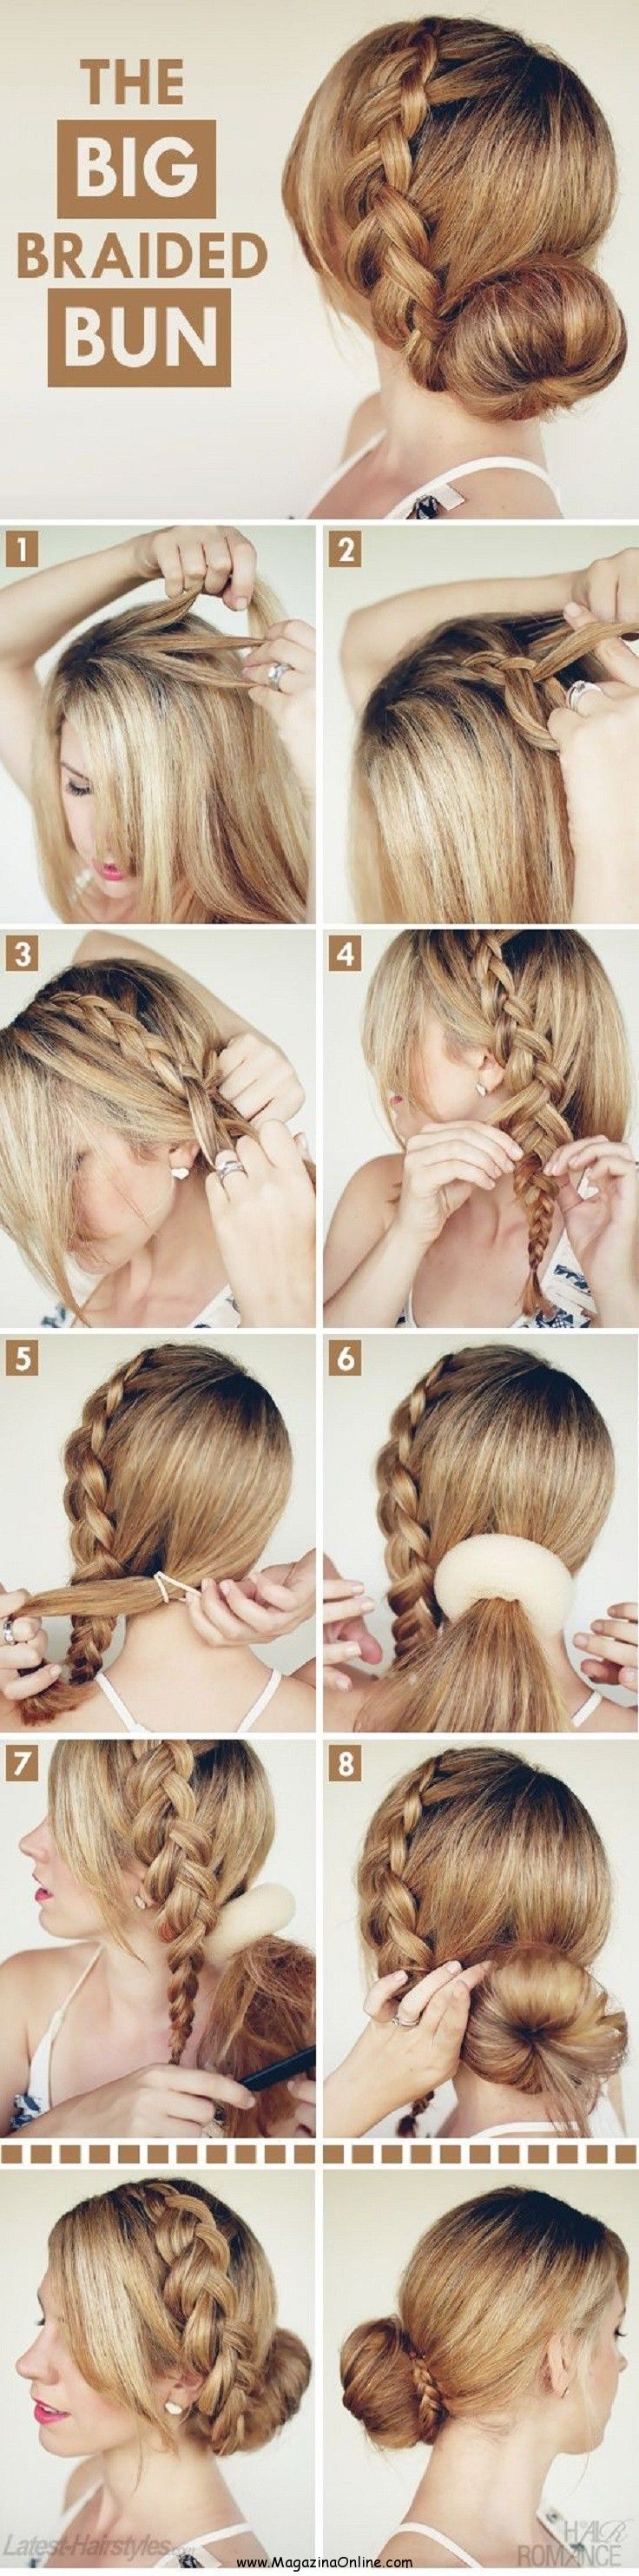 Pin by hareim malick on makeover and hair pinterest braid tutorials